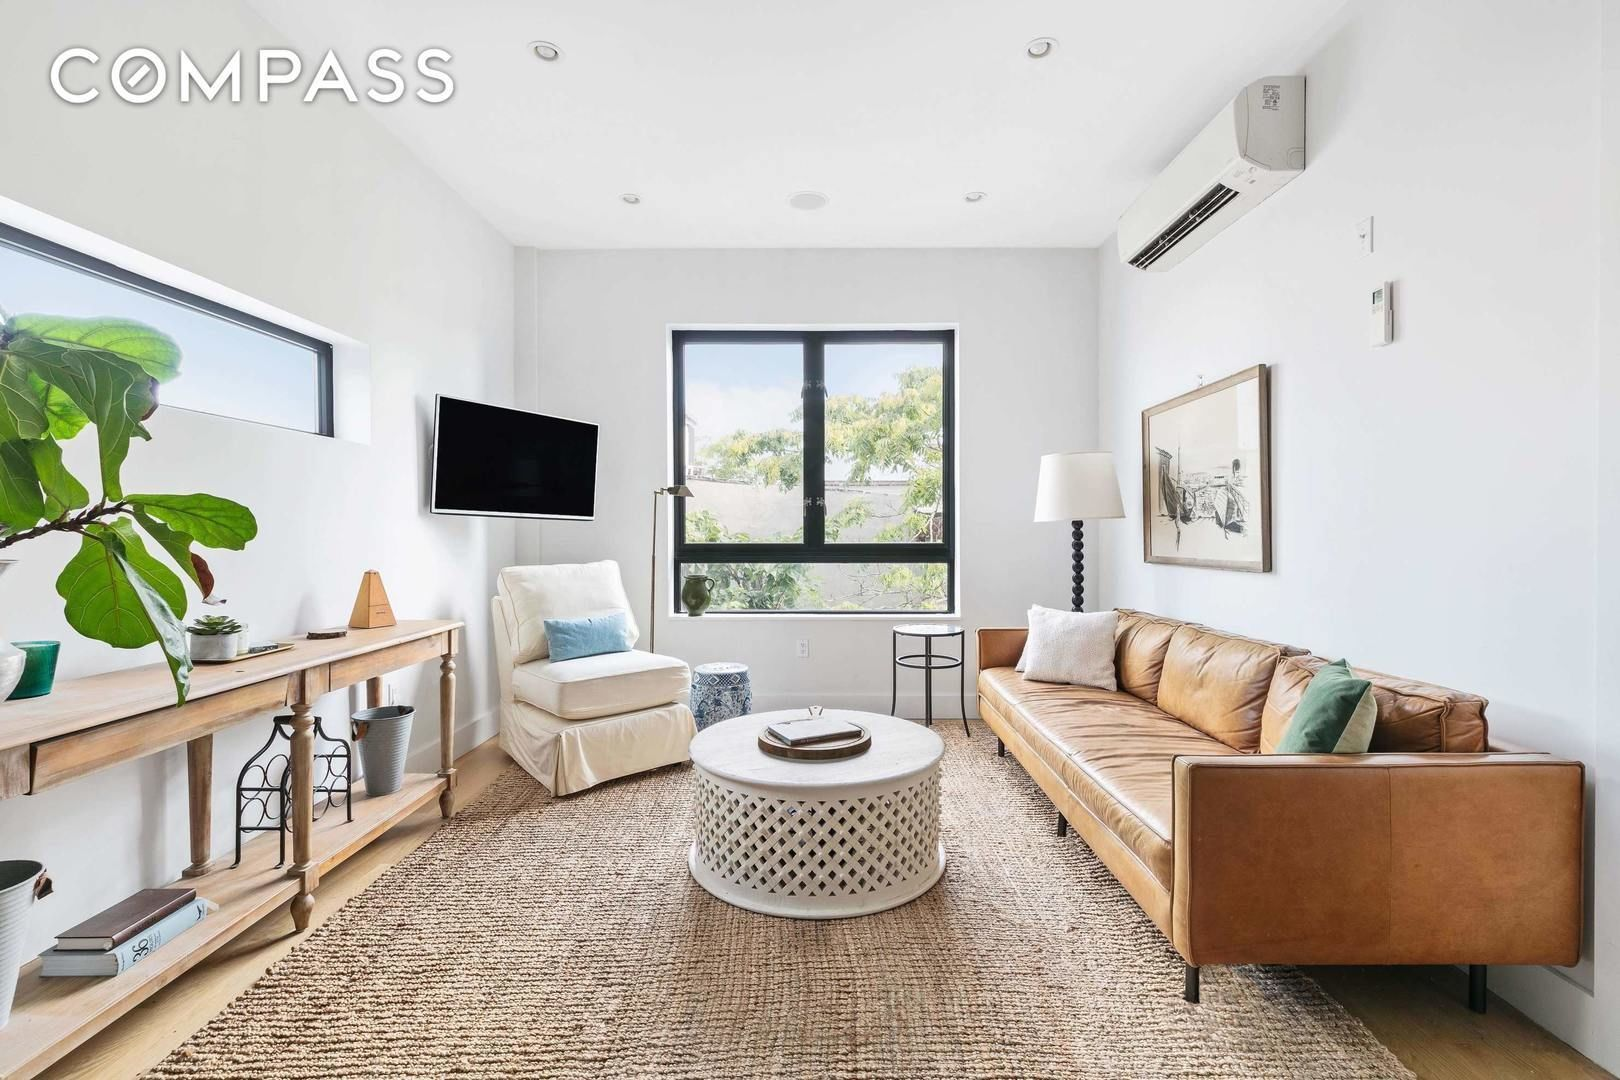 Apartment for sale at 629 Grand Street, Apt 3-B